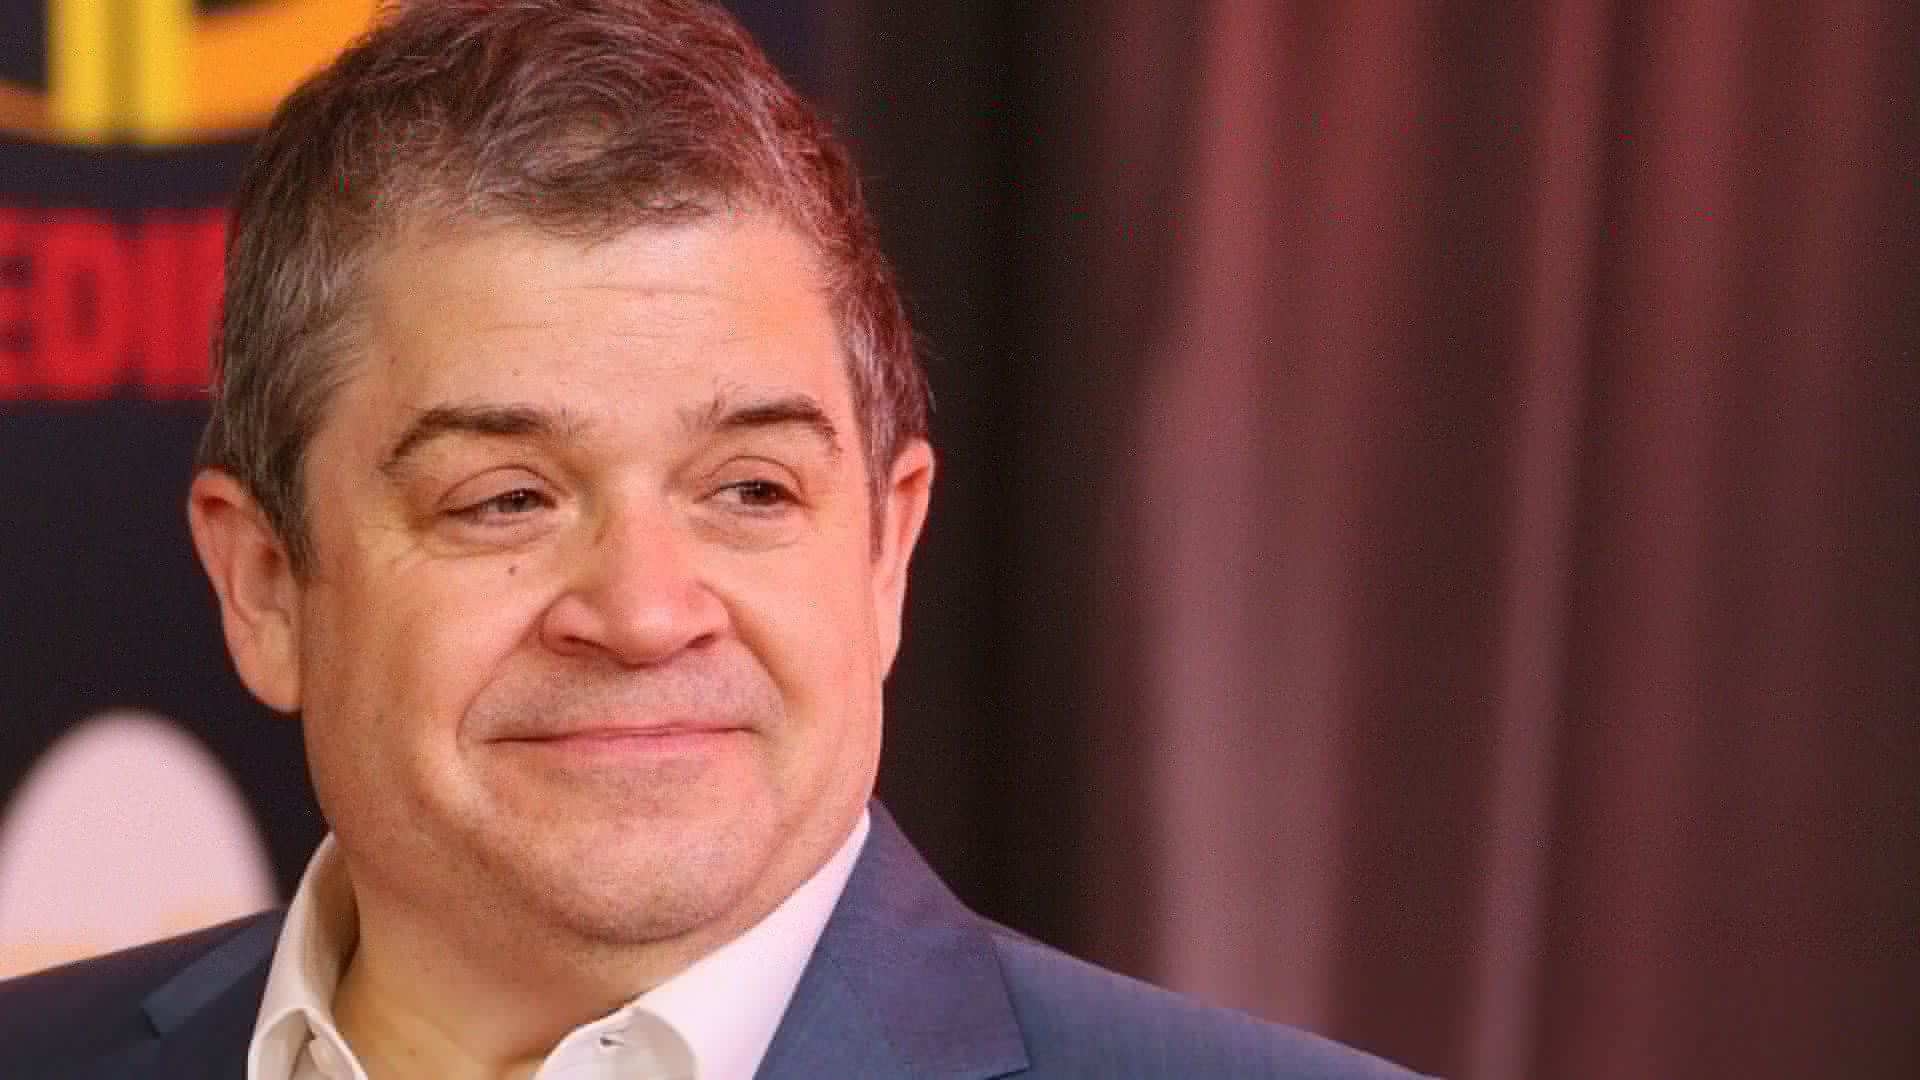 Comedian Patton Oswalt Just Showed the Emotionally Intelligent Way to Respond to Criticism